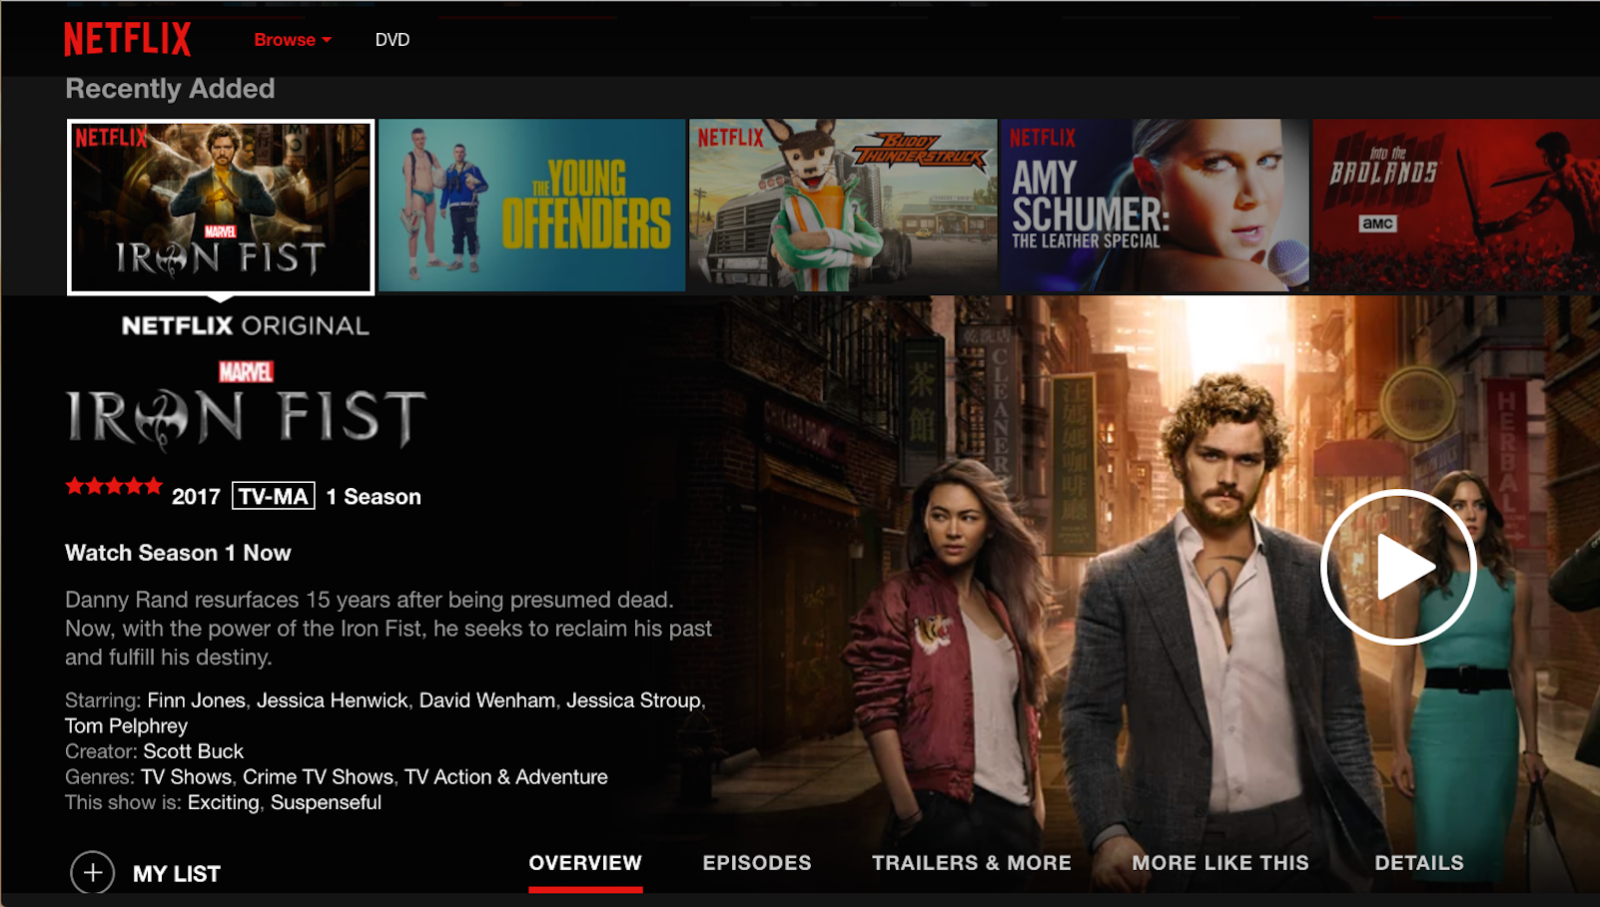 netflix old interface star rating